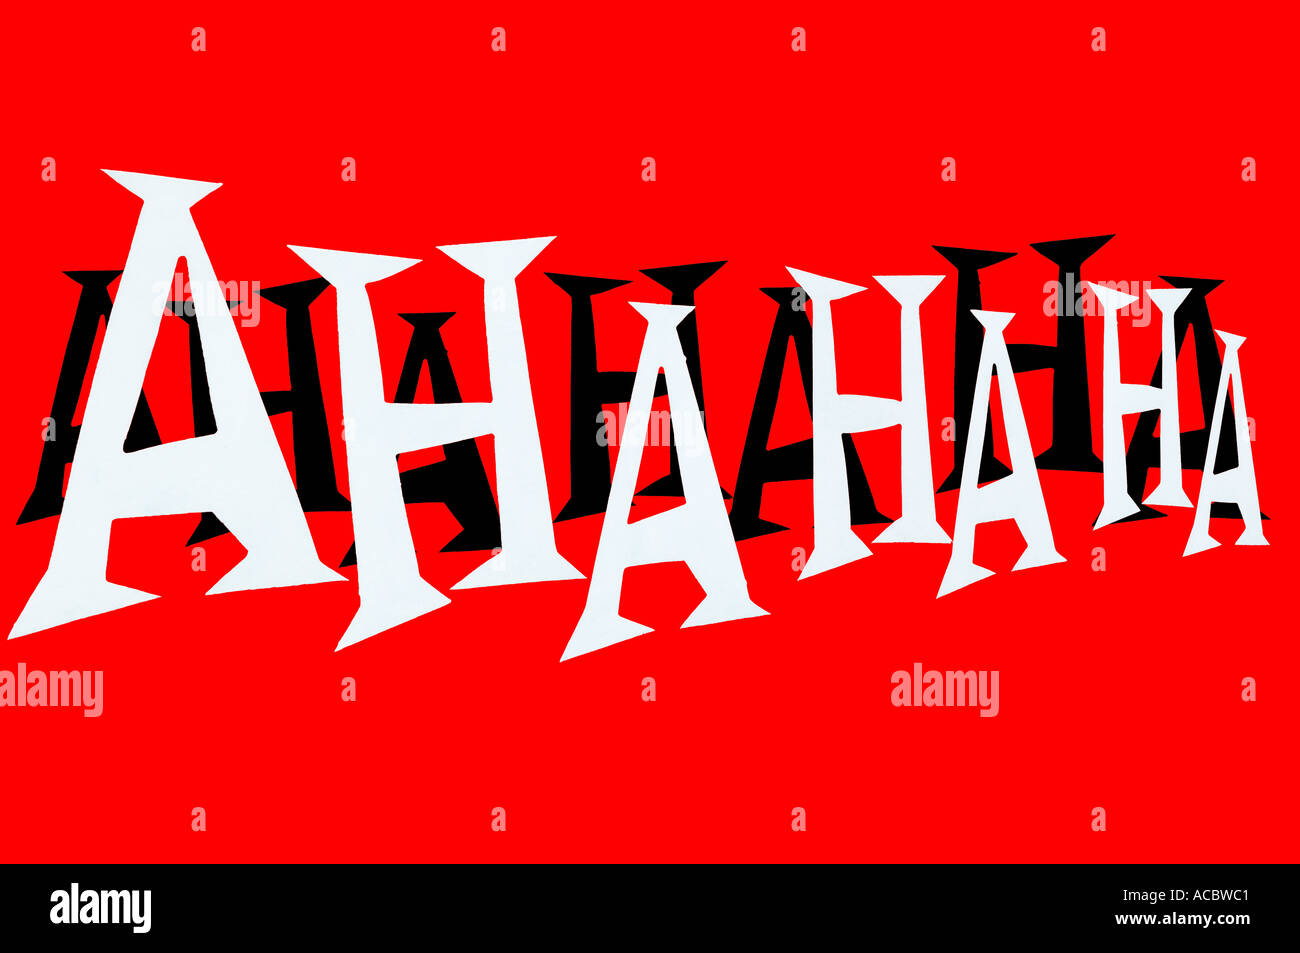 The Online Joke Shop Joke Shop Sign Aha Ha Ha Stock Photo Royalty Free Image